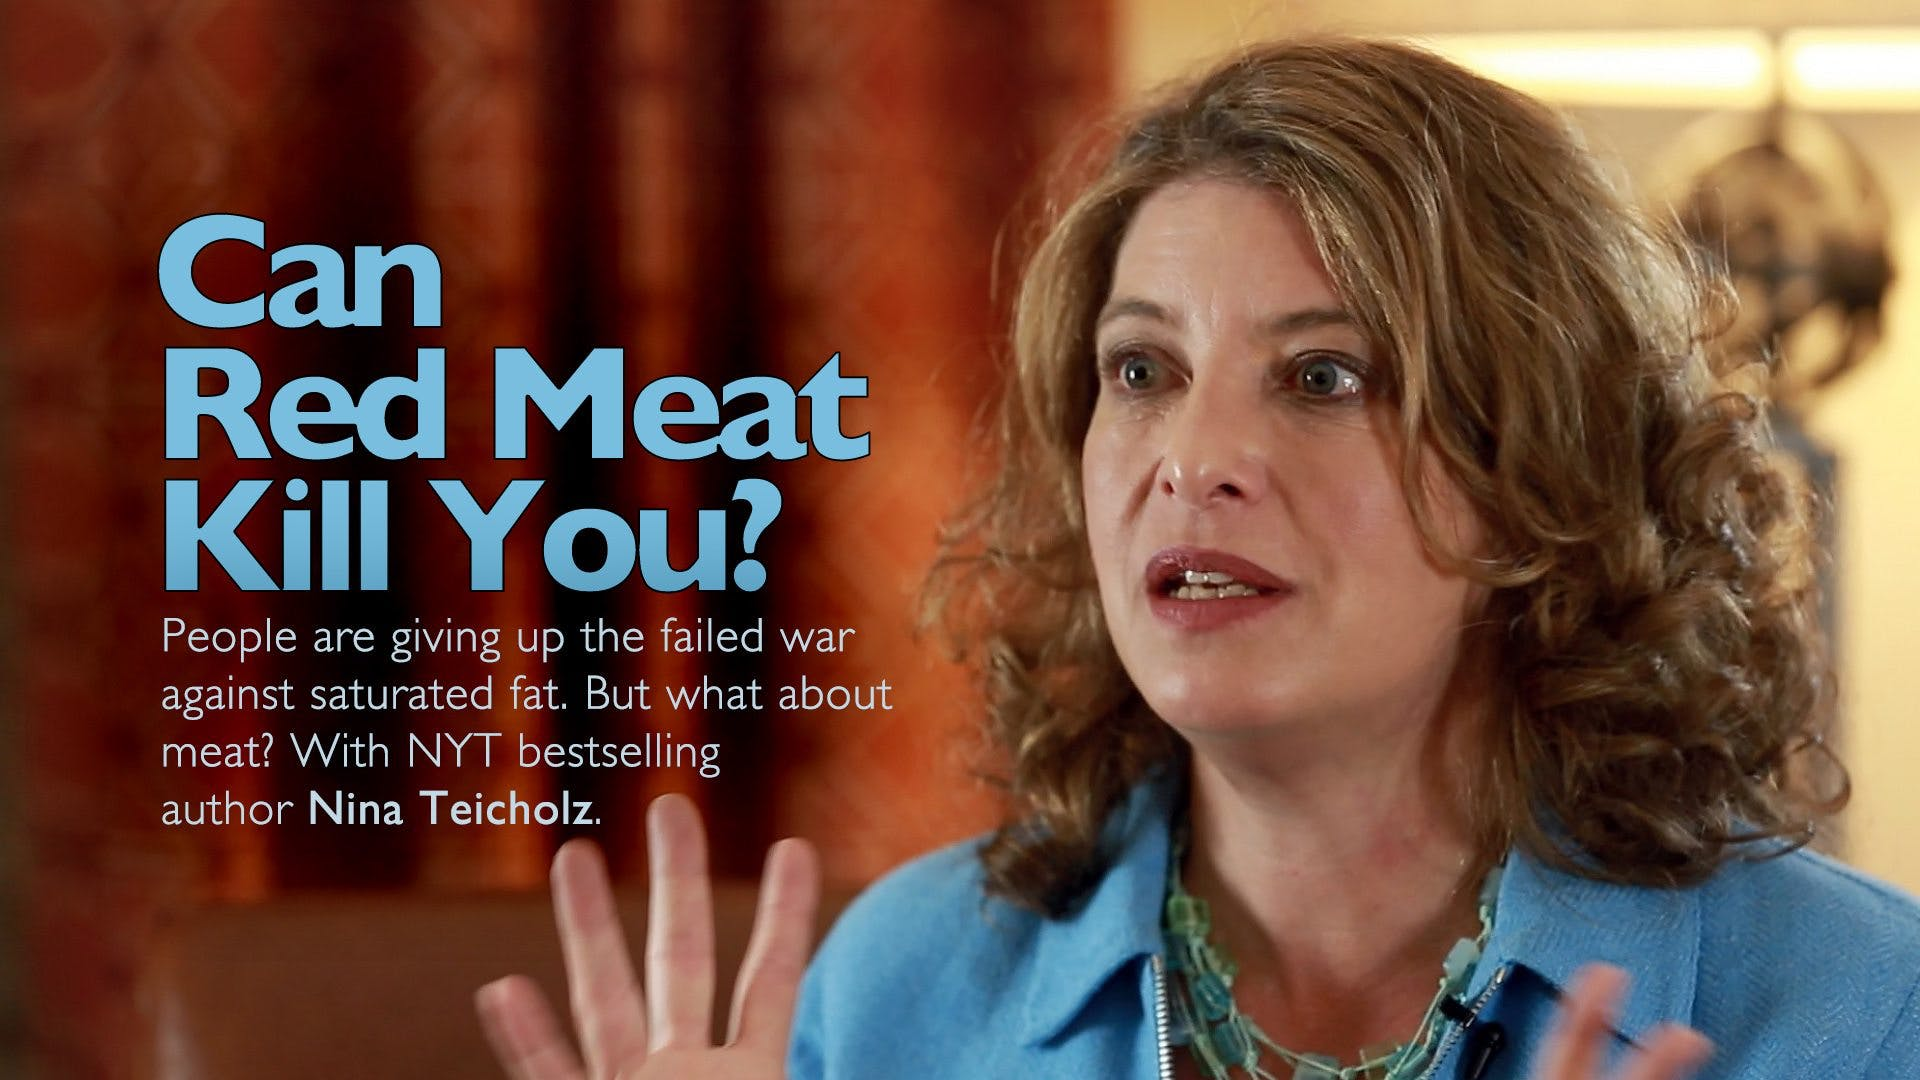 Can red meat kill you?